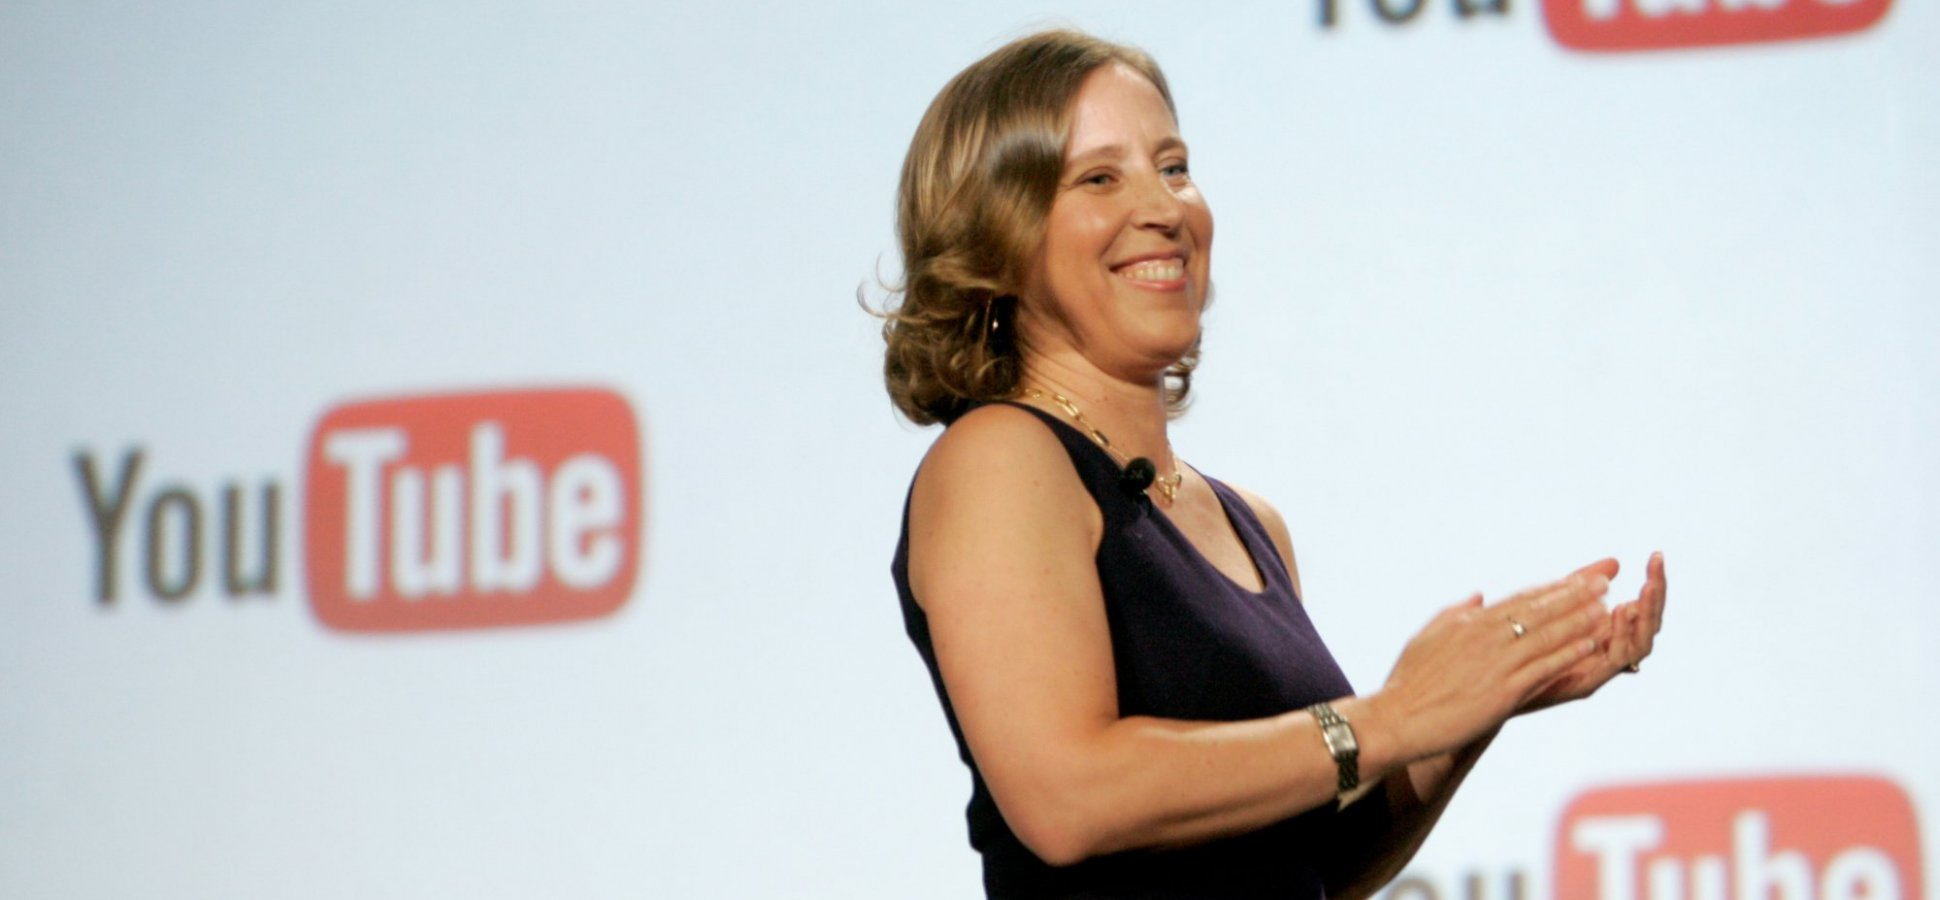 This is How YouTube CEO Susan Wojcicki Regulates Her 5 Kids' Screen Time